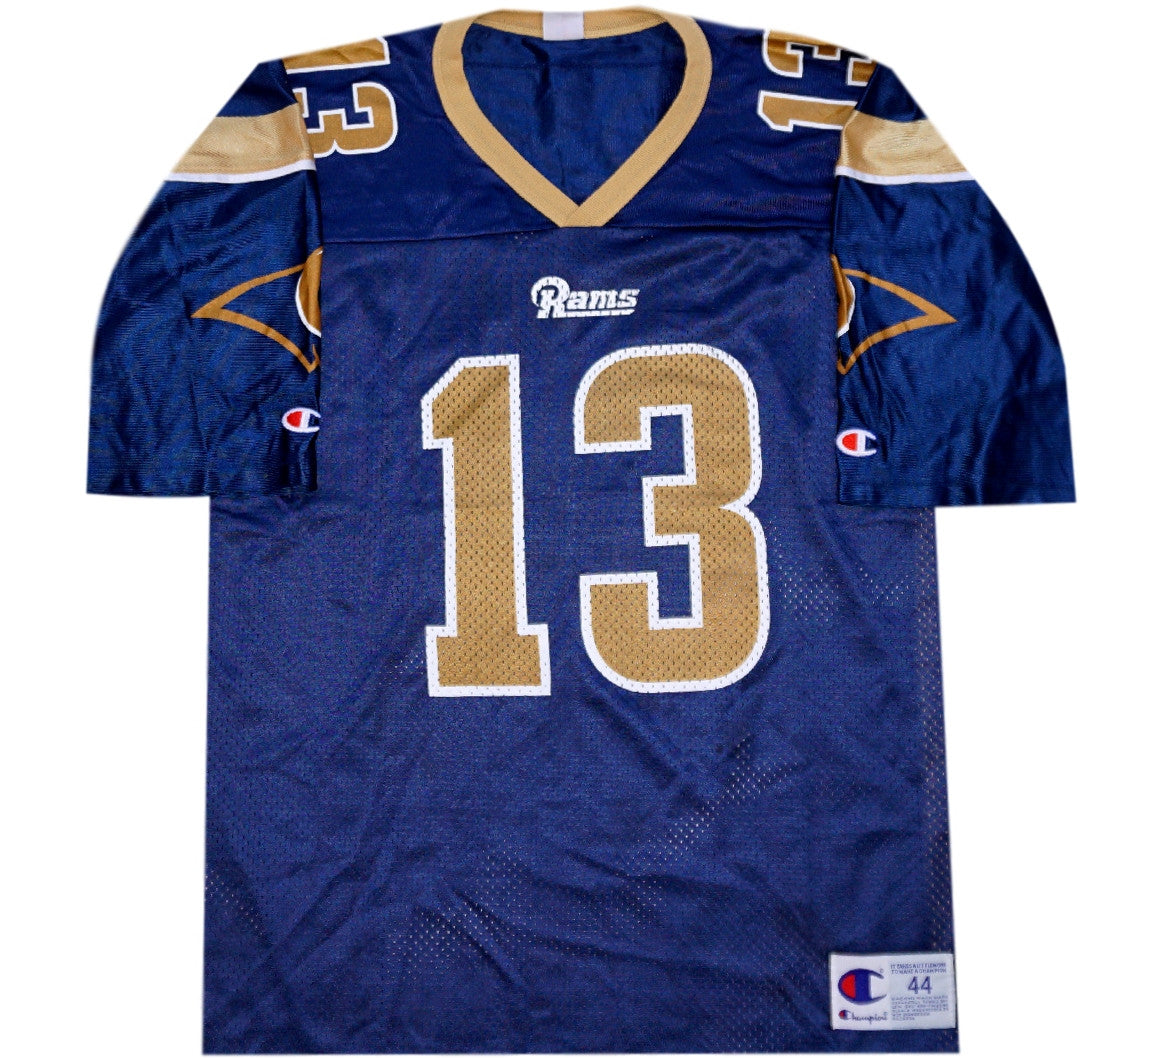 on sale d3b9c 60570 Kurt Warner Rams 90's Jersey